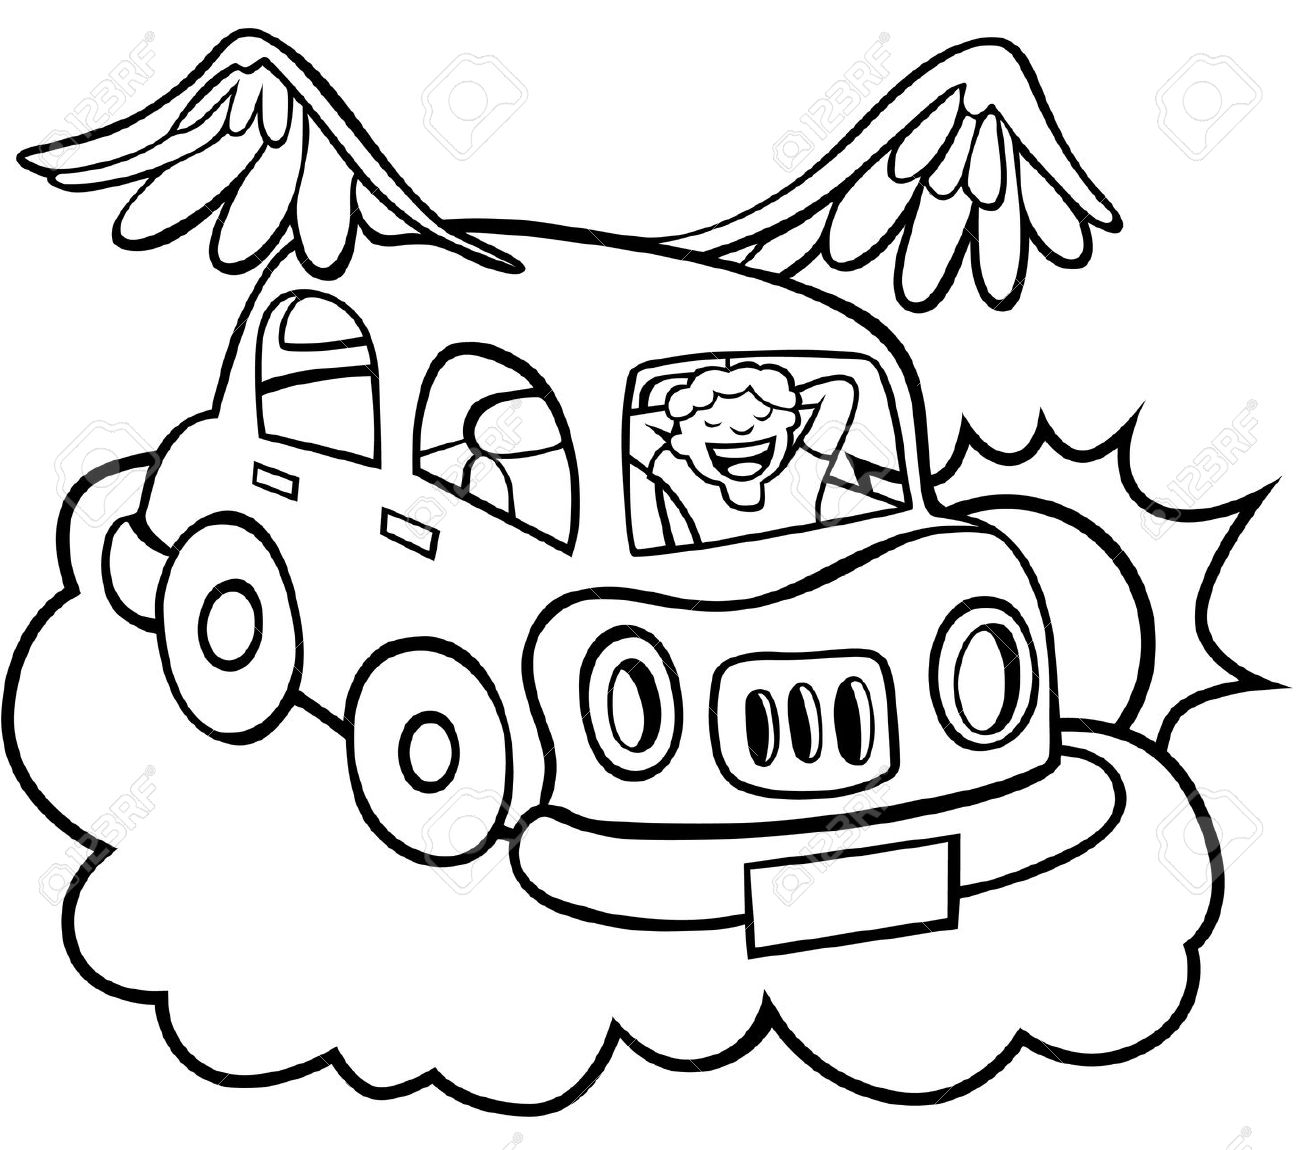 Flying car wings clipart.